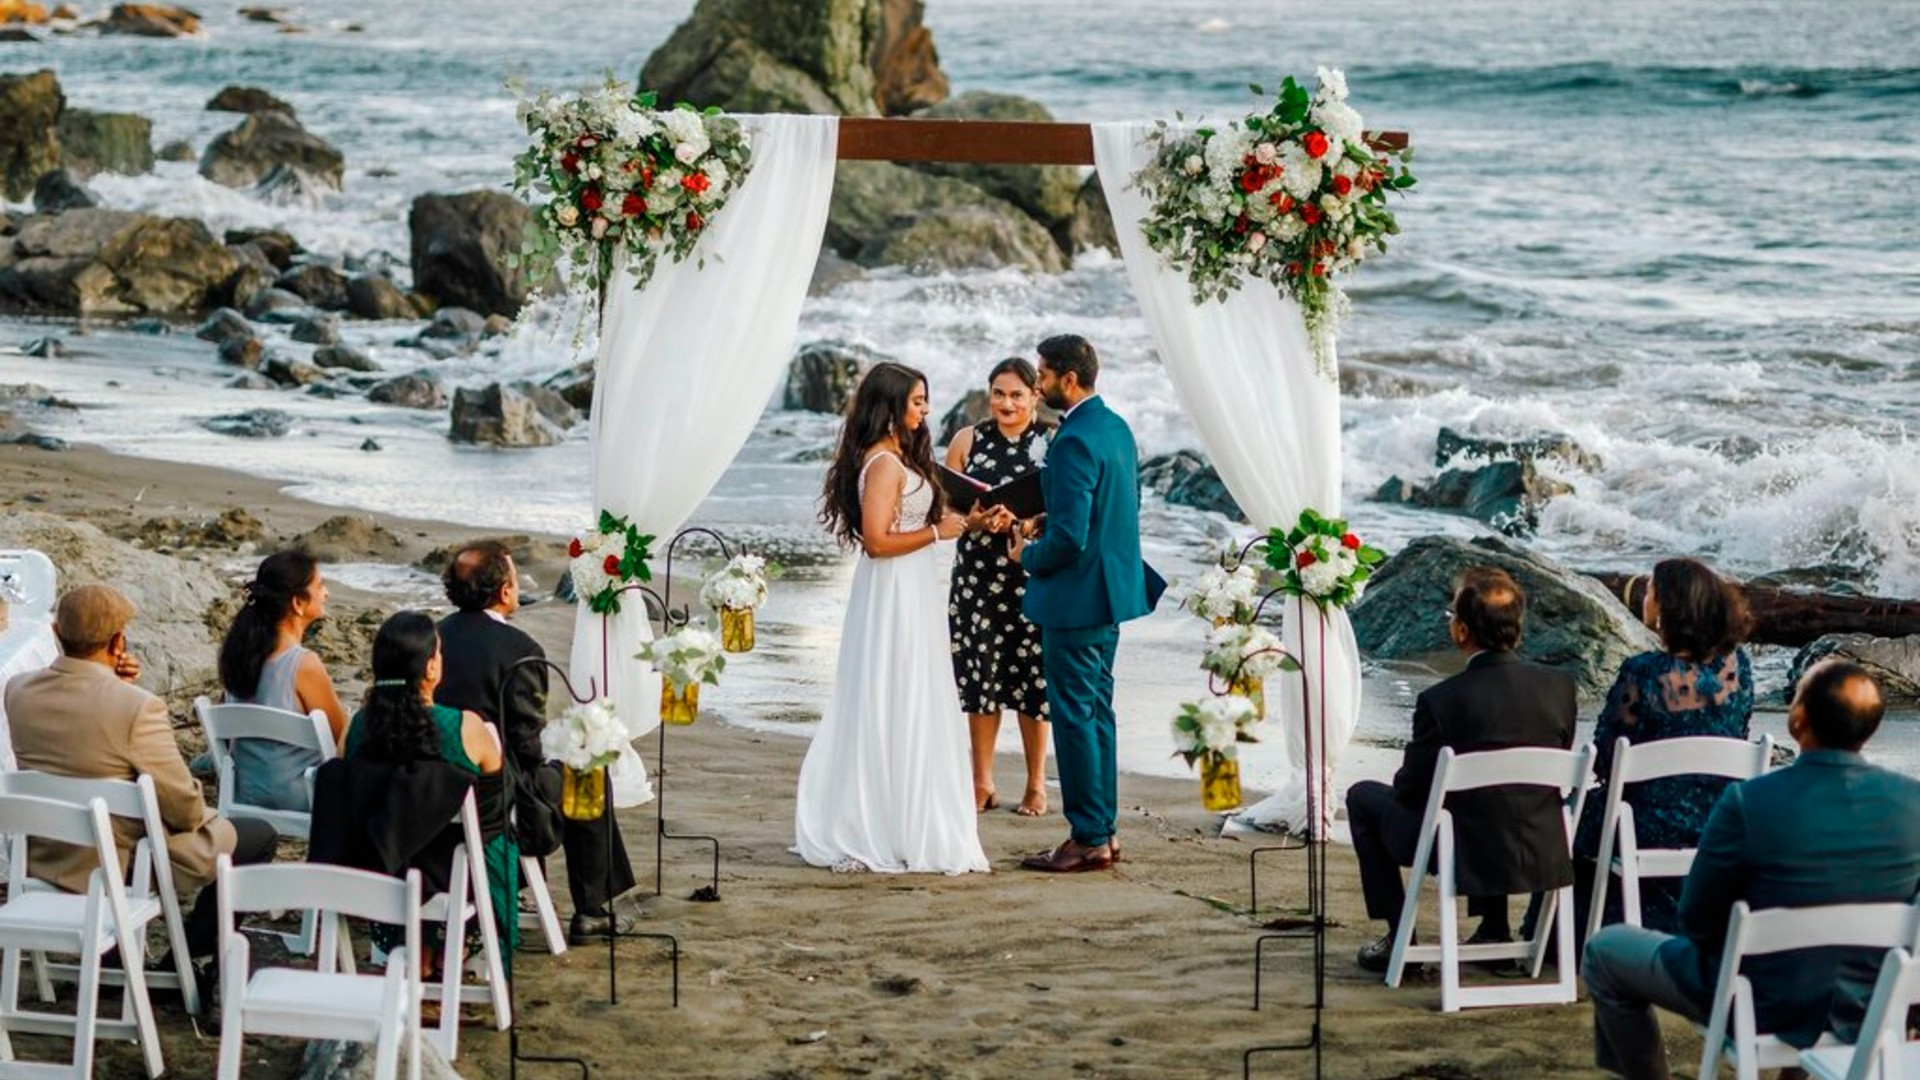 This photo shows bride Namisha Balagopal and groom Suhaas Prasad getting married in a small legal ceremony Aug. 15, 2020, on Muir Beach near San Francisco. (Vellora Productions via AP)